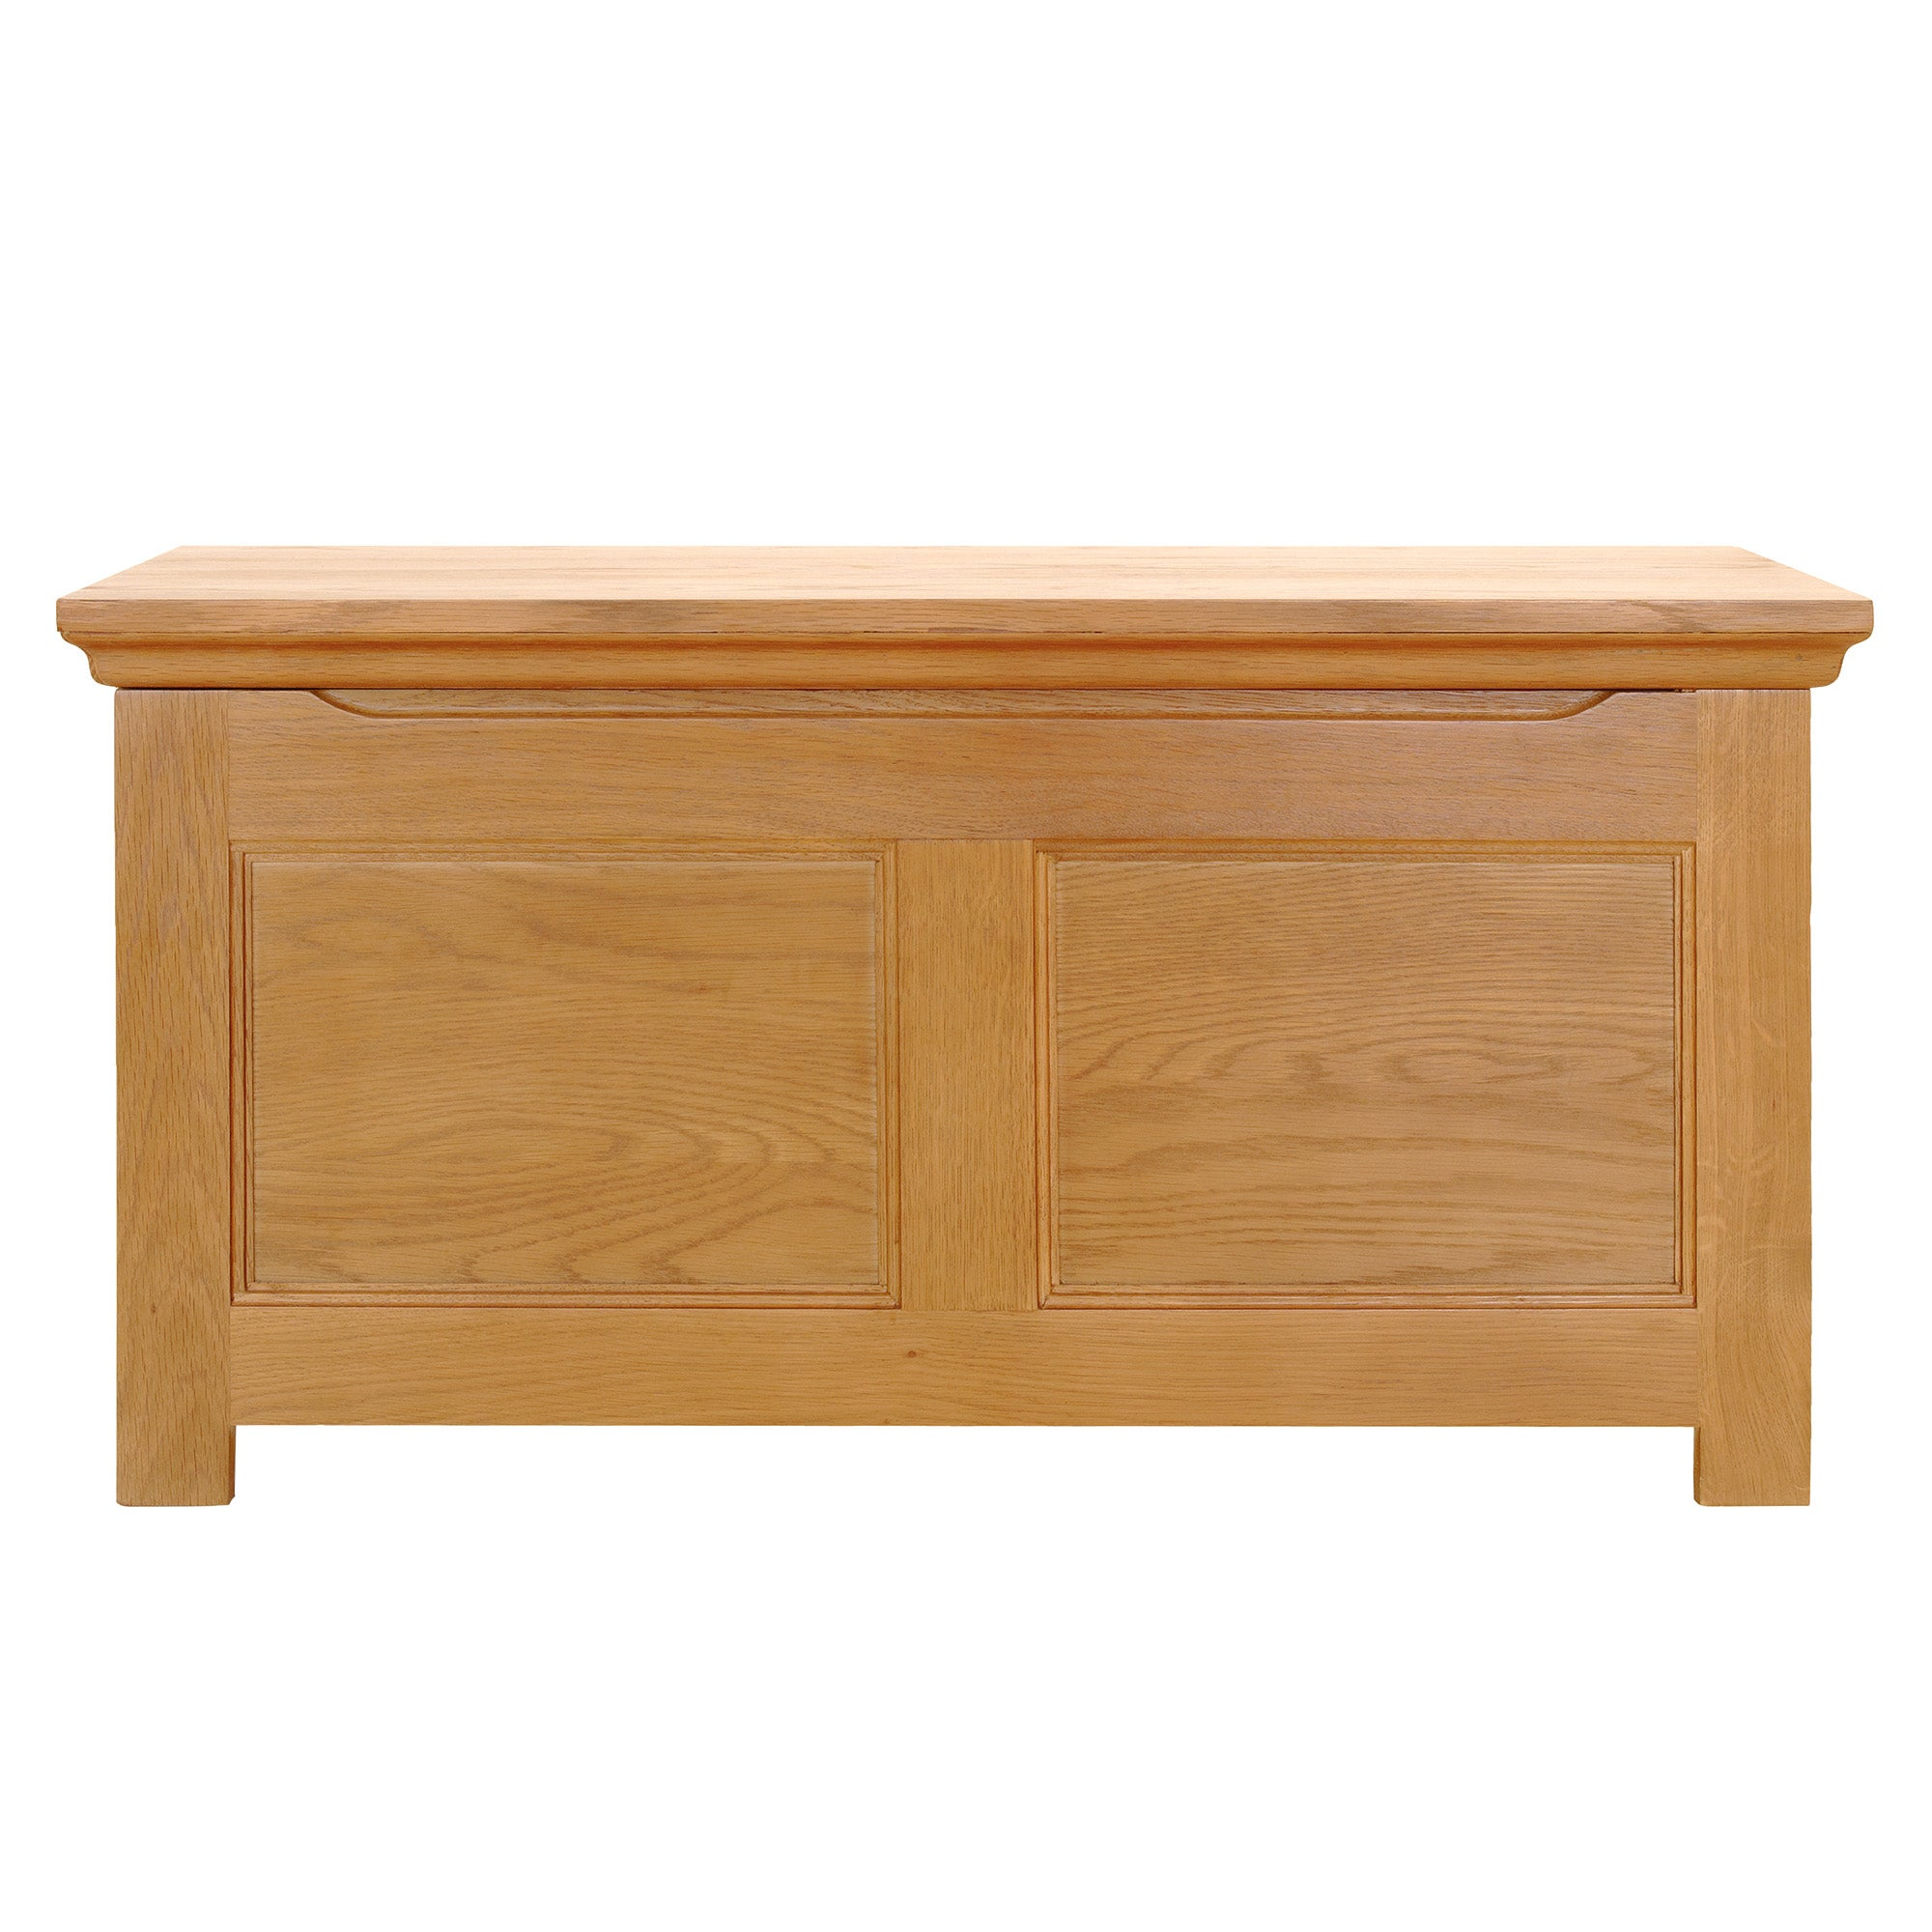 Dorchester Oak Blanket Box